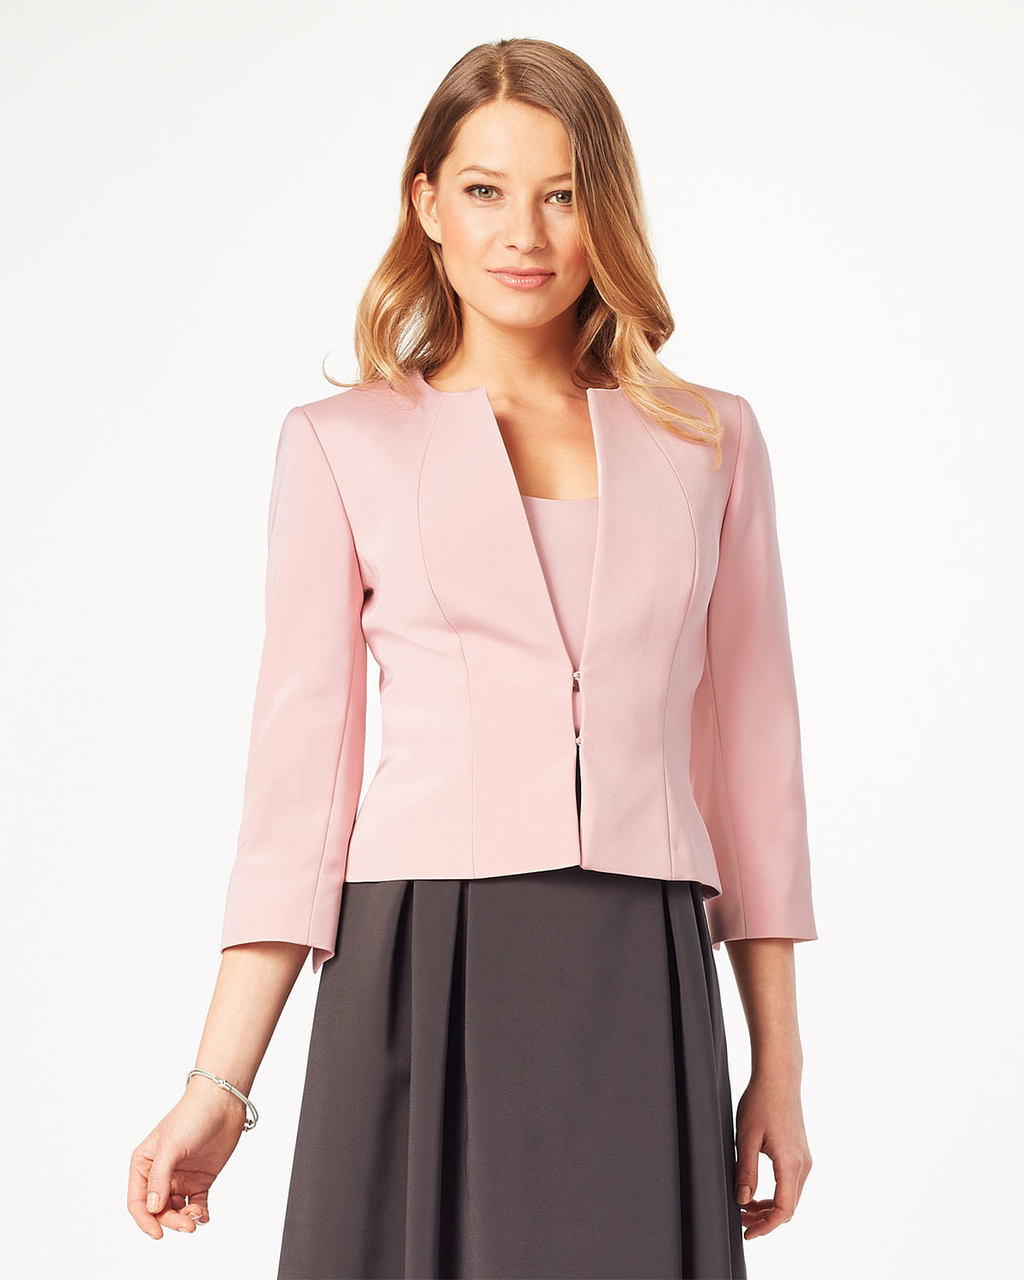 Helena Jacket - pattern: plain; style: single breasted blazer; collar: round collar/collarless; predominant colour: blush; length: standard; fit: tailored/fitted; fibres: polyester/polyamide - 100%; occasions: occasion; sleeve length: 3/4 length; sleeve style: standard; texture group: crepes; collar break: medium; pattern type: fabric; season: s/s 2016; wardrobe: event